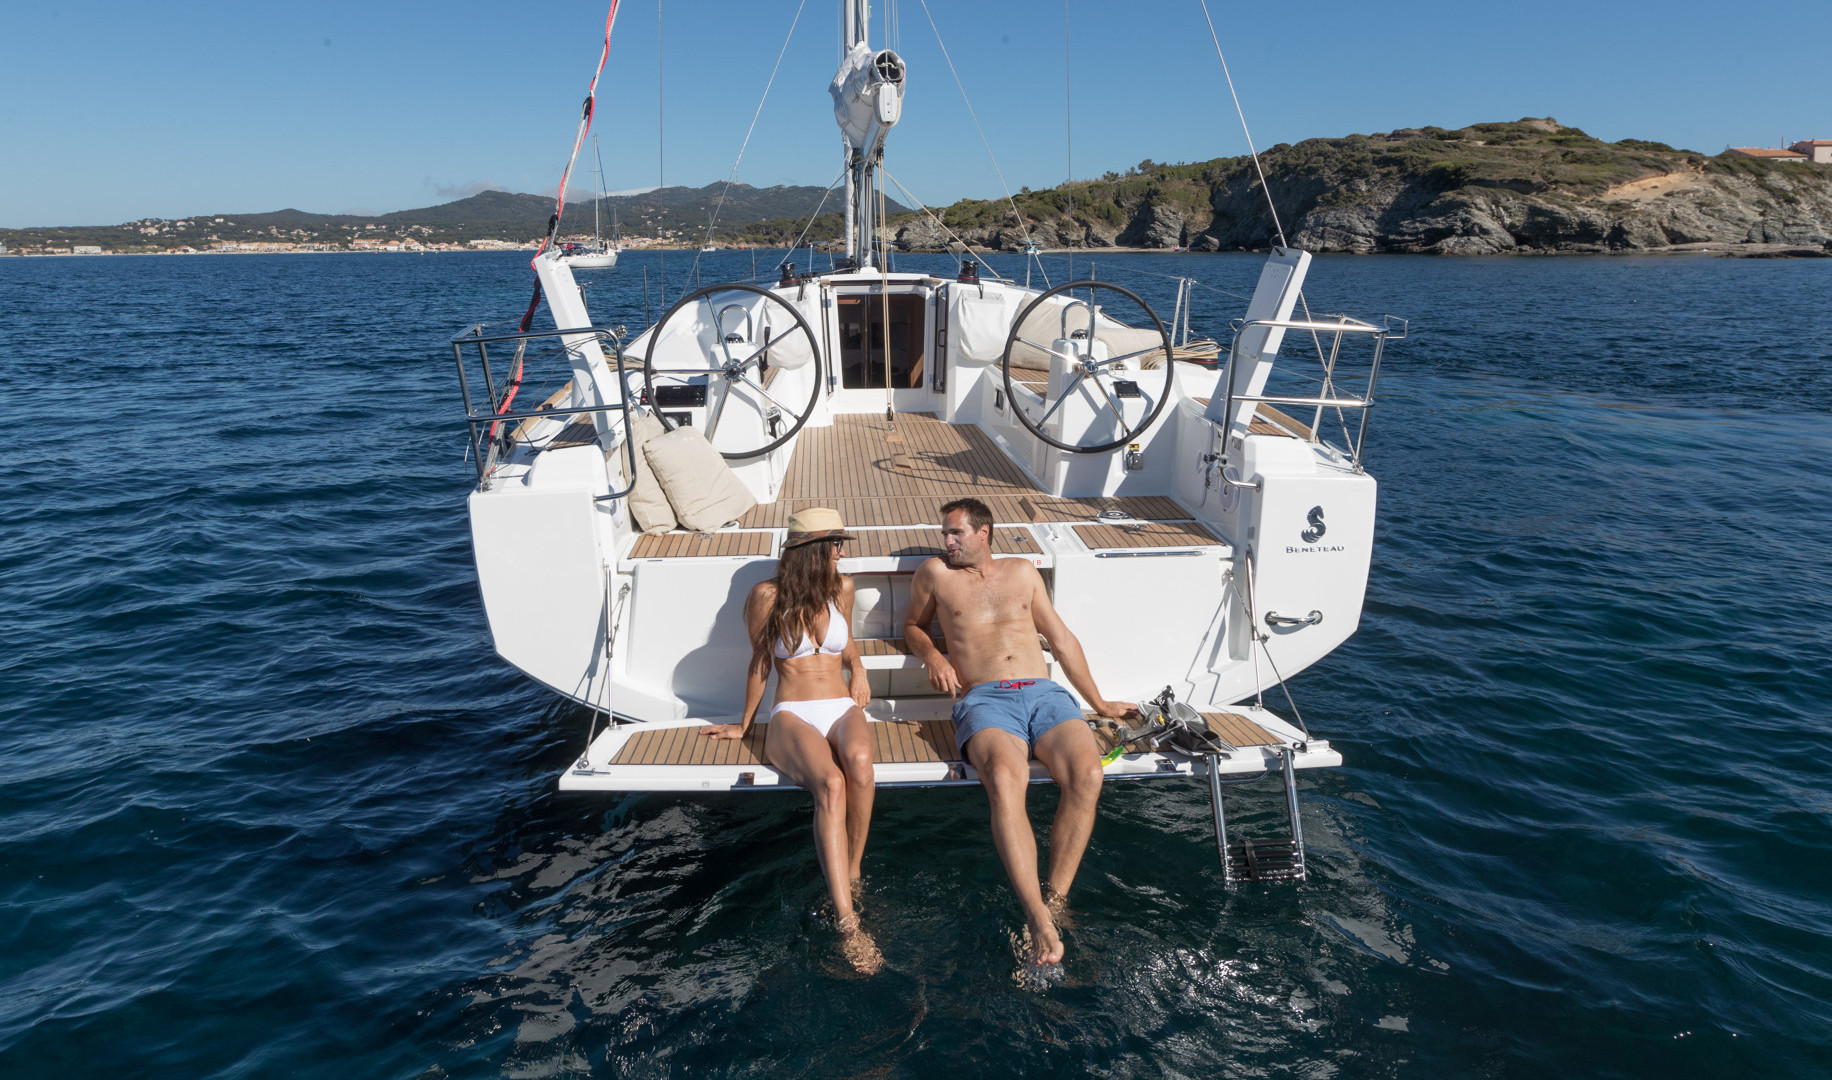 Oceanis 38.1 Boat Sale Cape Town abromow